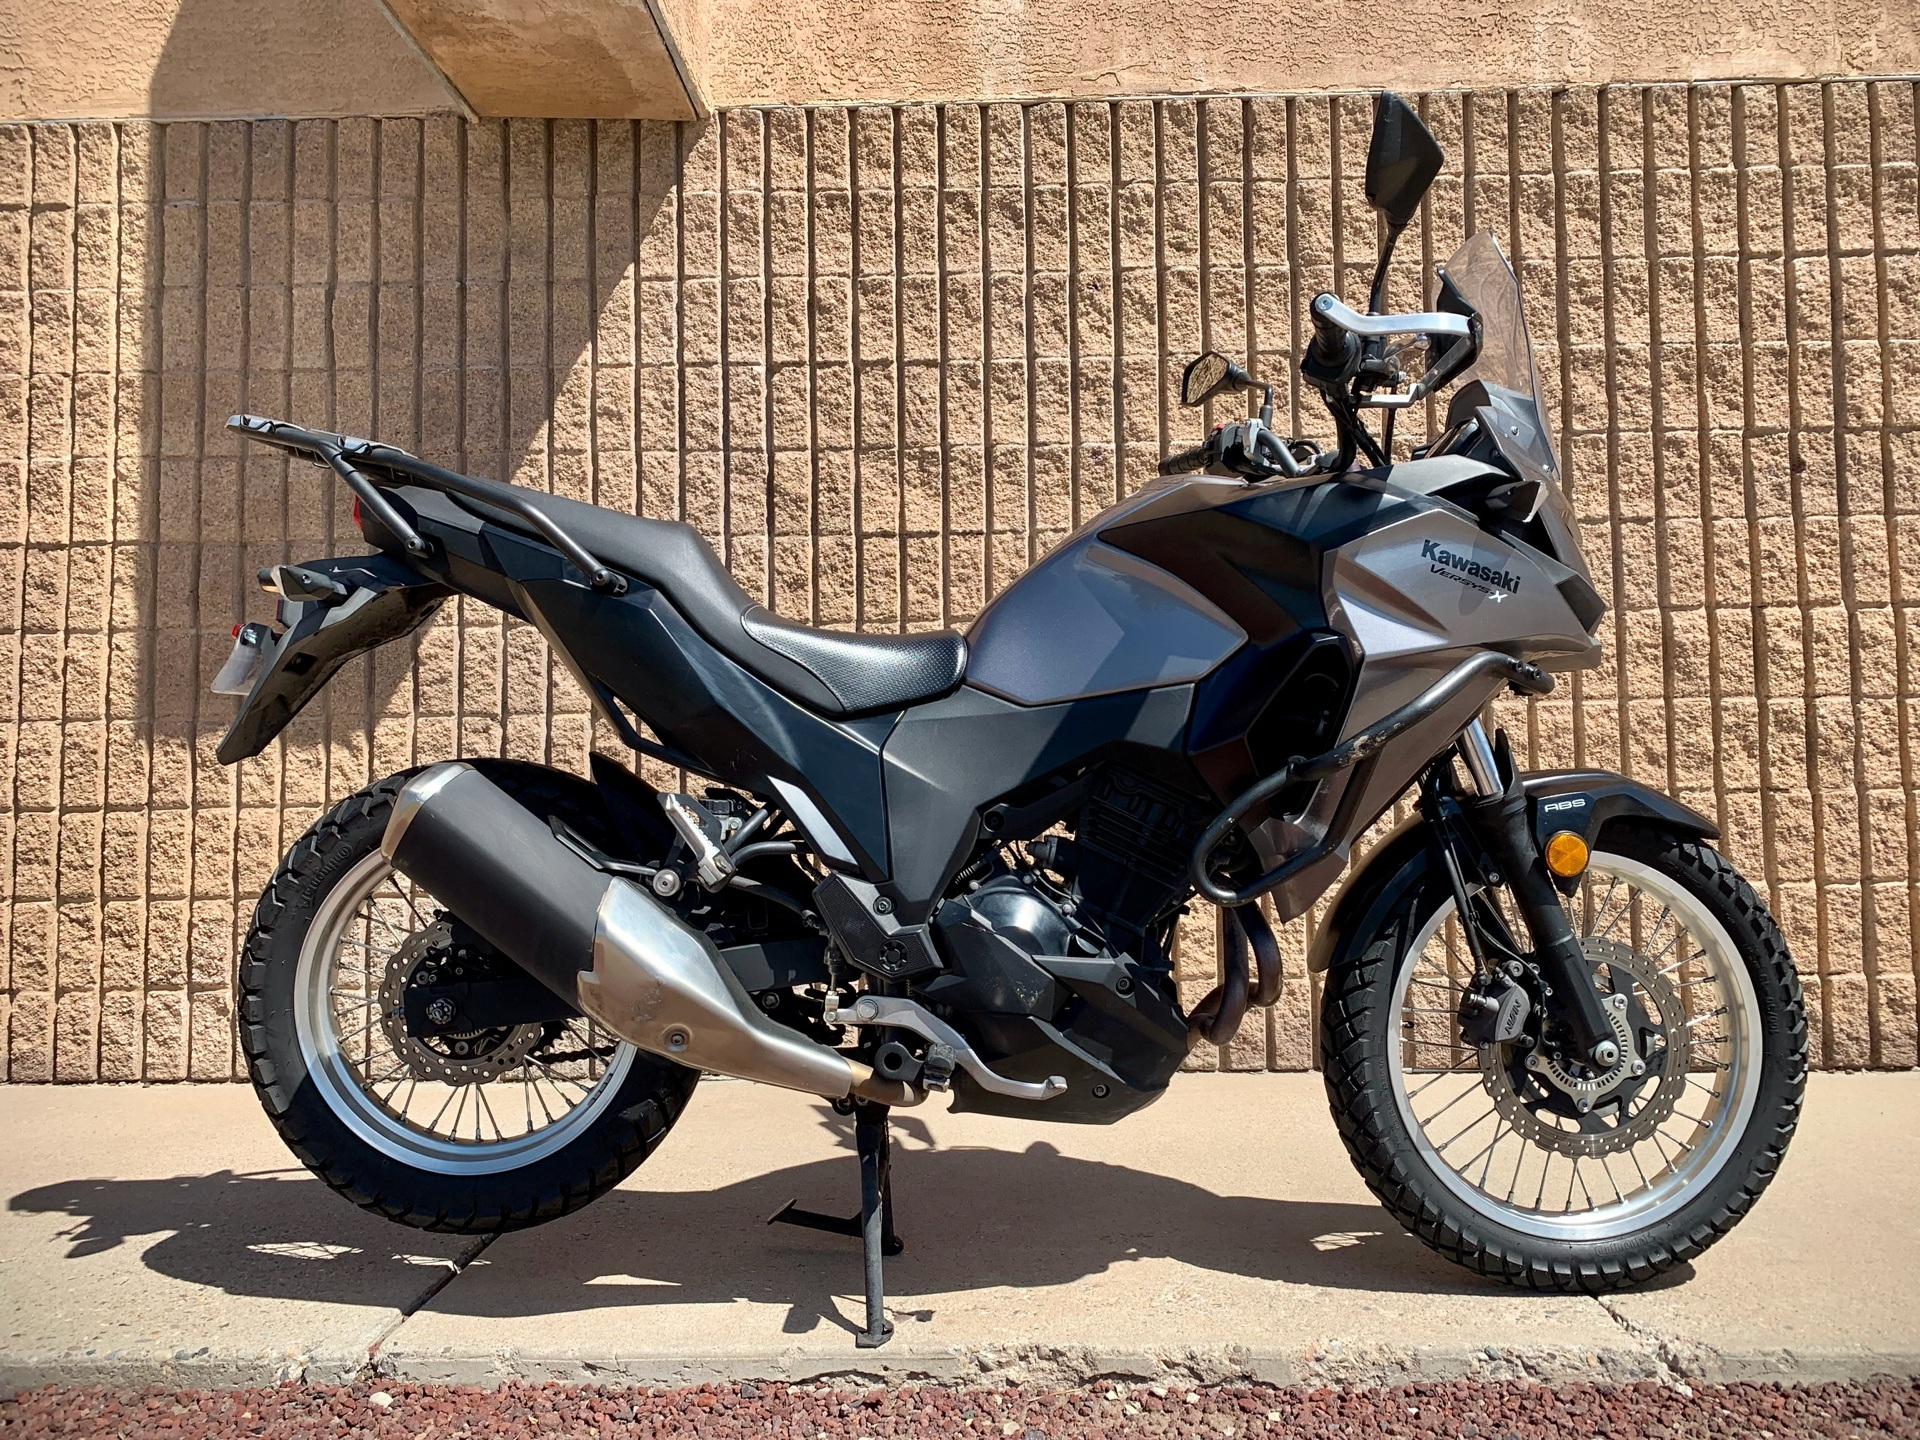 2017 Kawasaki Versys-X 300 ABS in Albuquerque, New Mexico - Photo 1